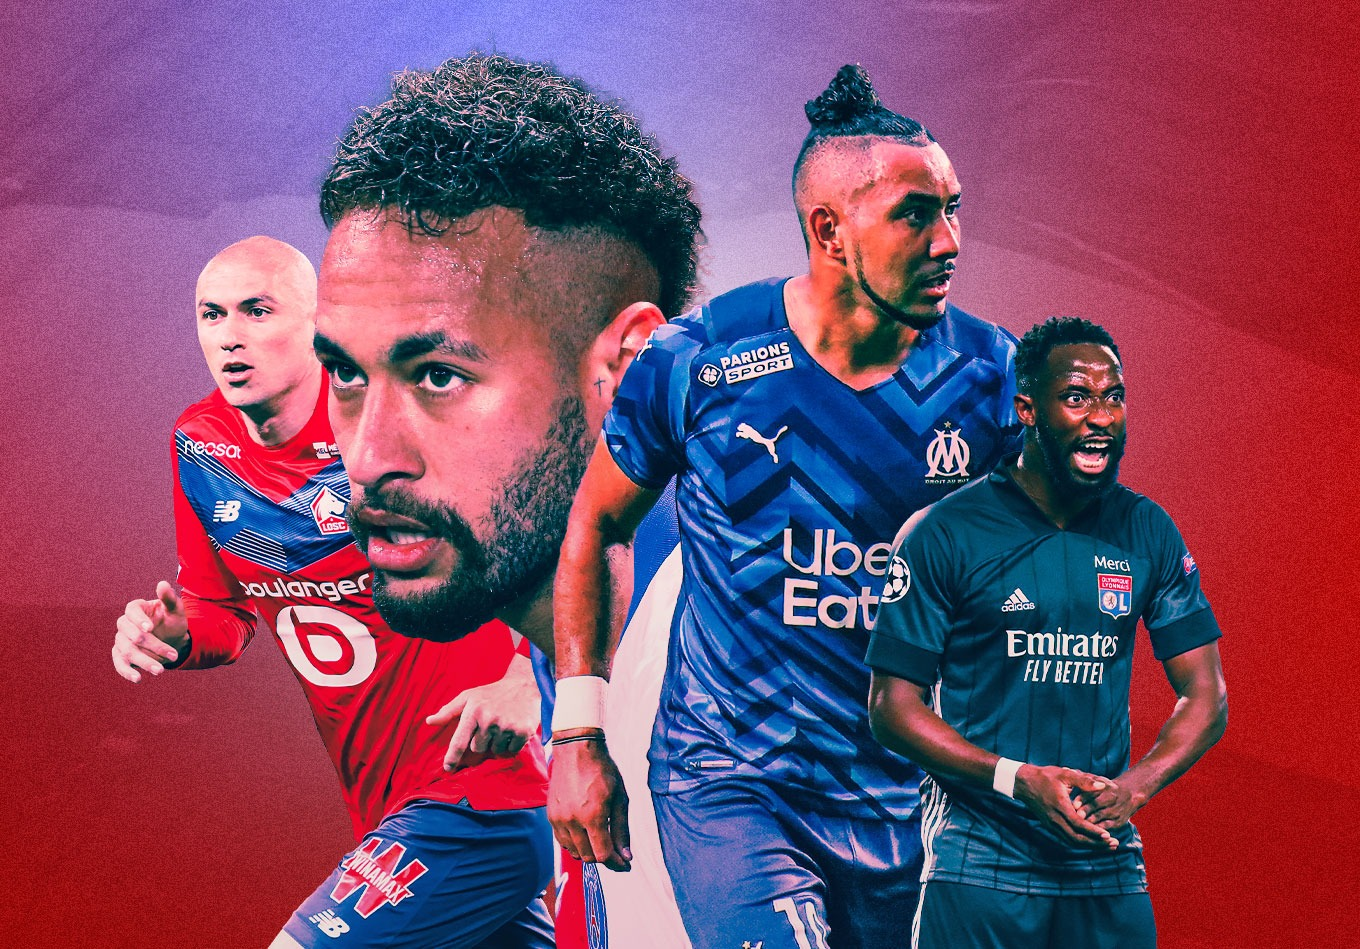 Ligue 1 Season Preview: The Home of Young Talent